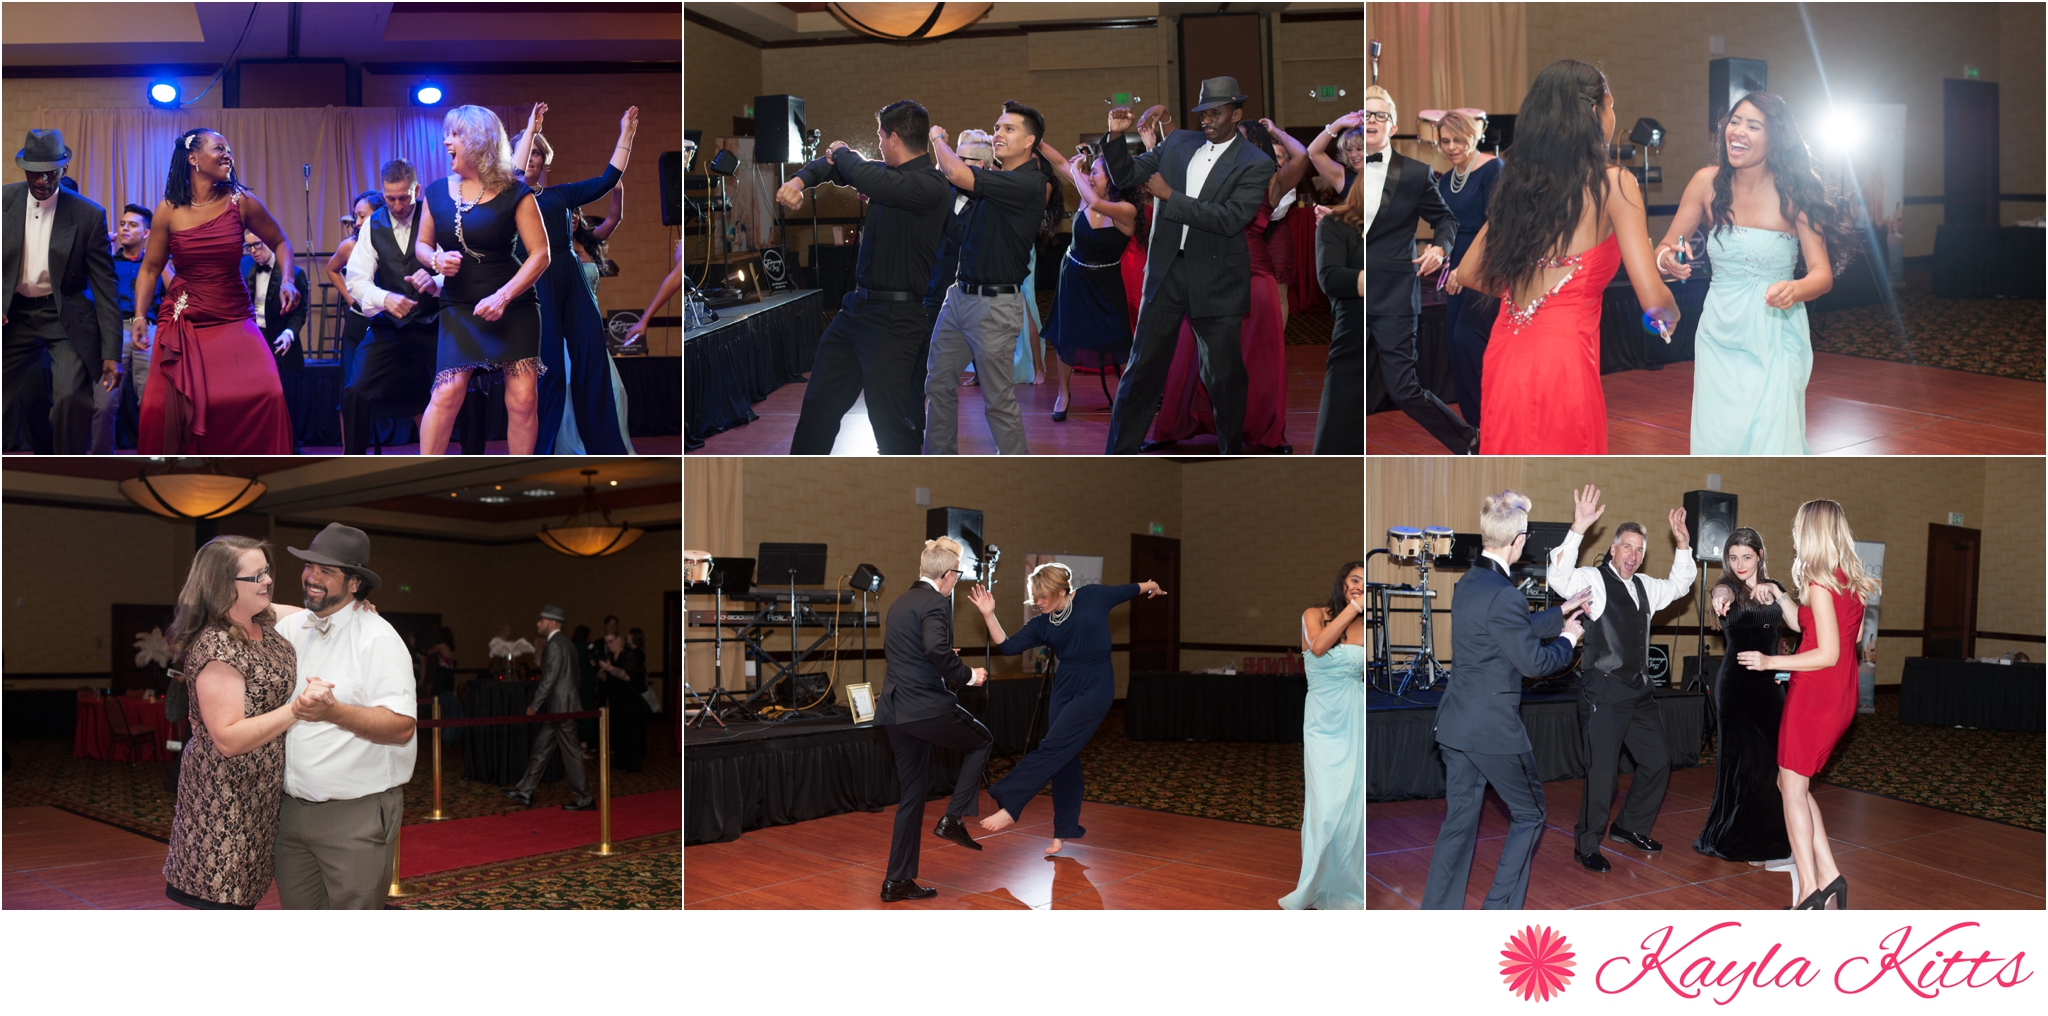 kayla kitts photography - perfect wedding guide - client appreciation party - albuqueruqe marriott_0016.jpg